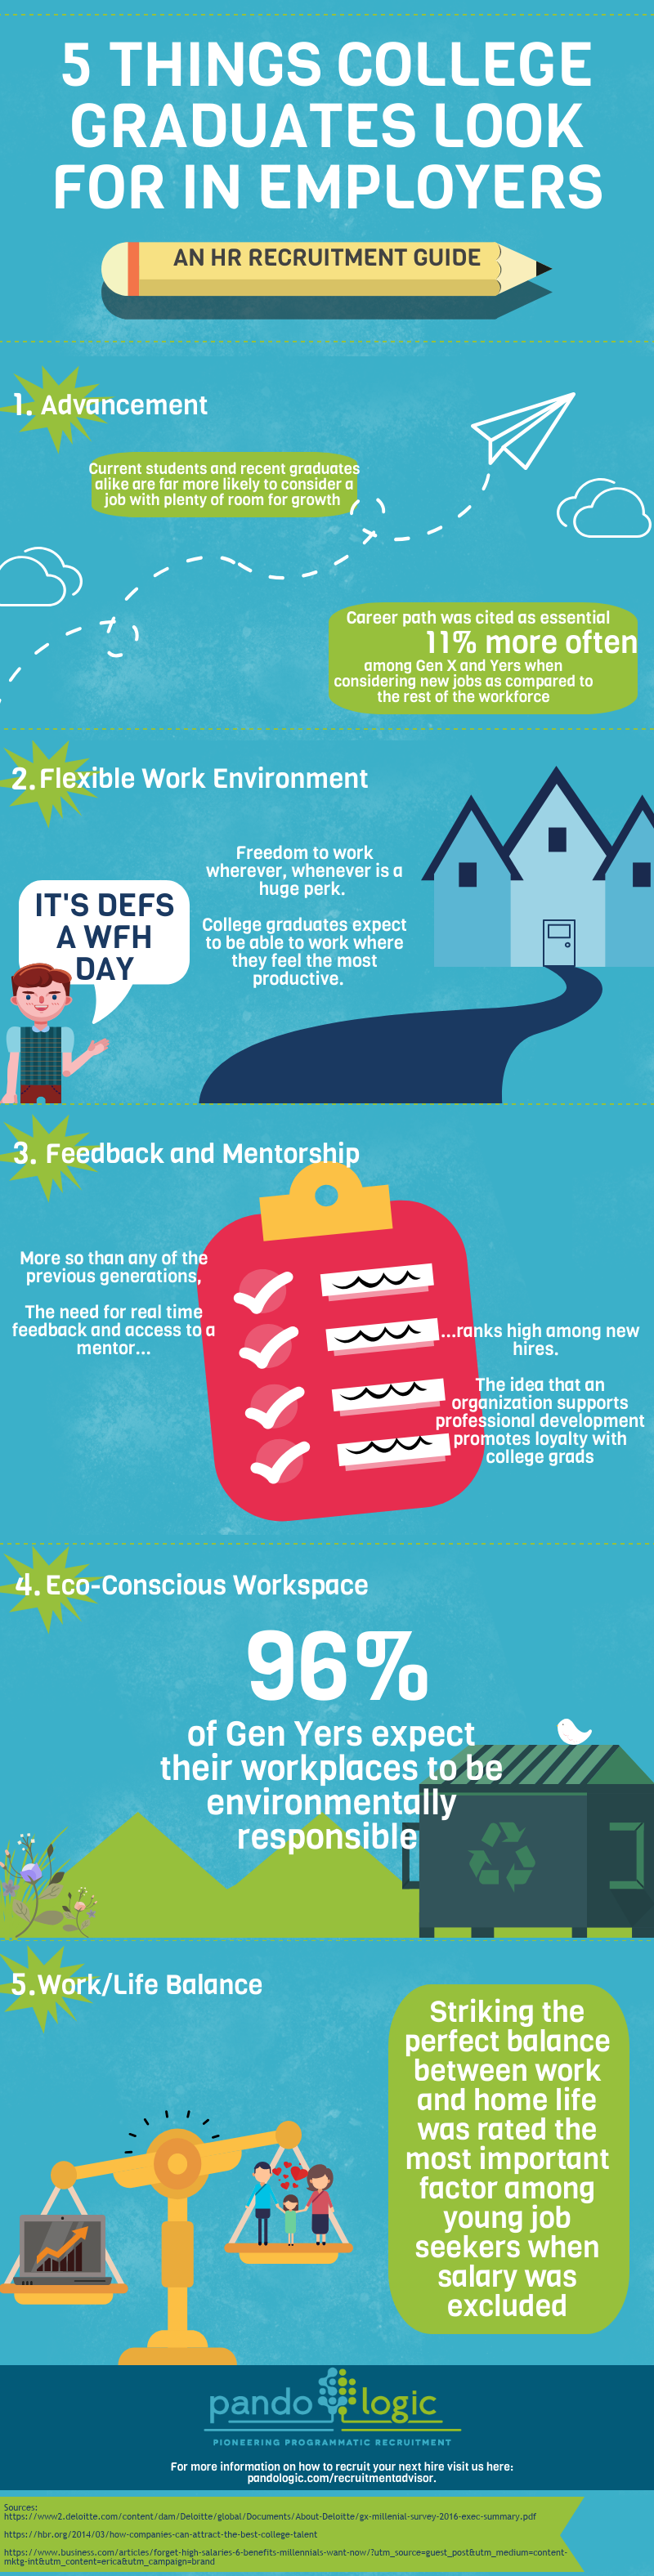 5-Things-College-Grads-Want-In-Employers_infographic1